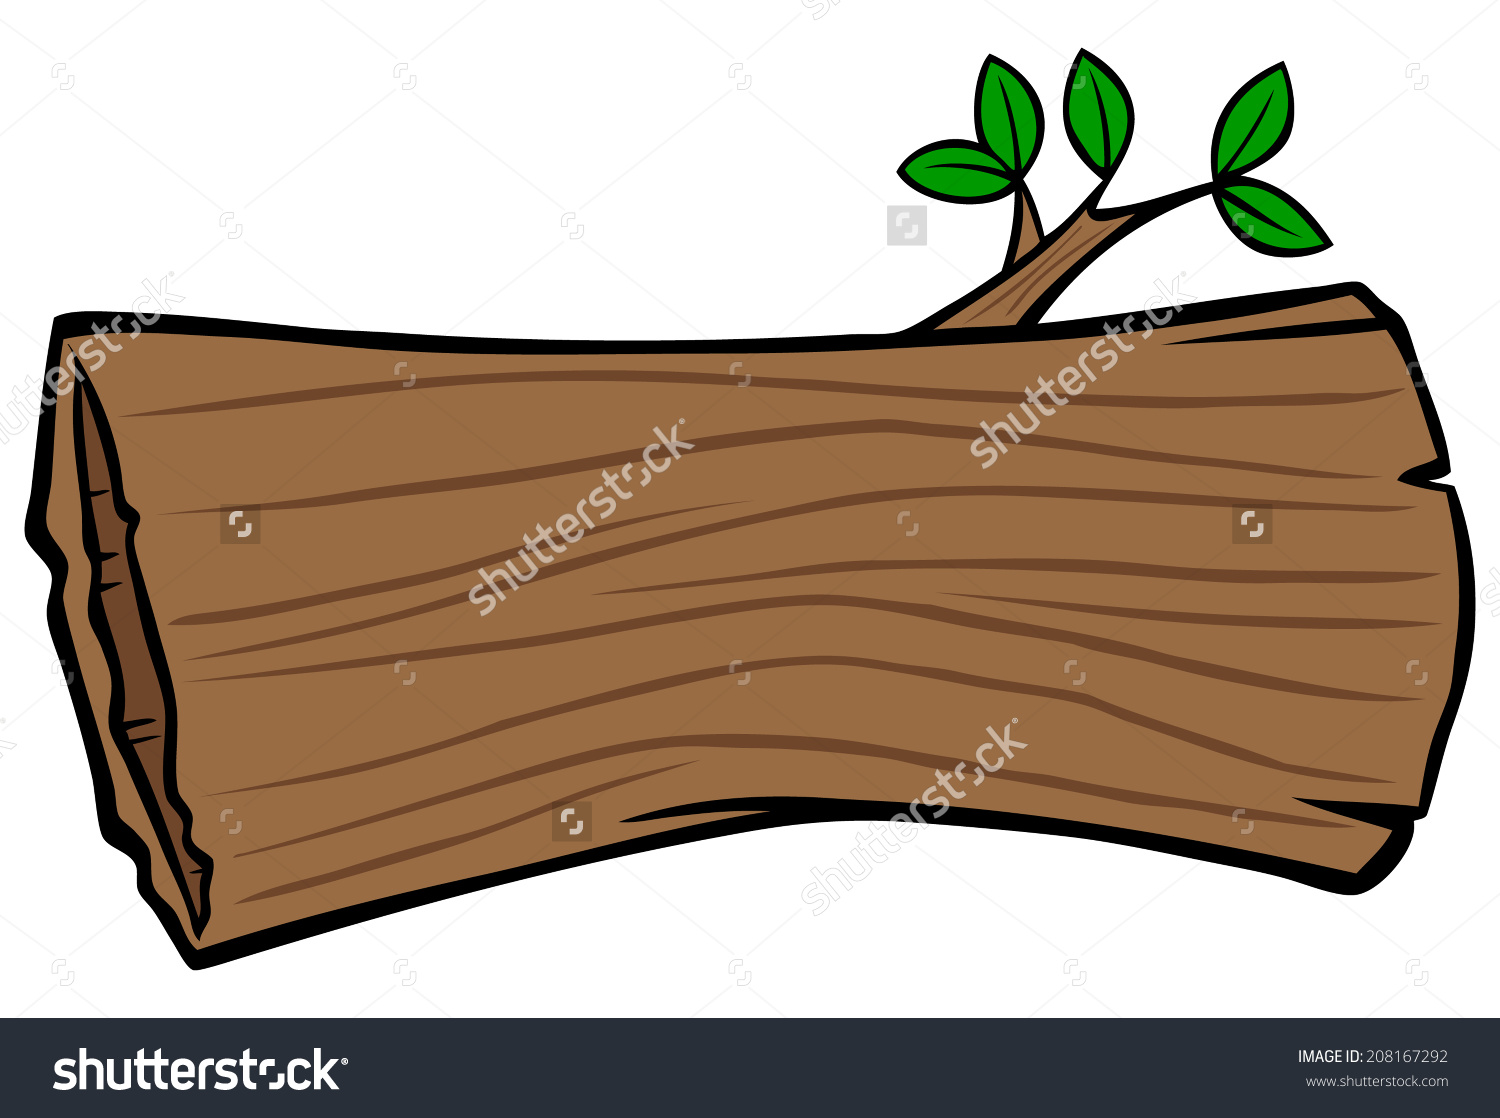 Hollow Tree Trunk Stock Vector 208167292.